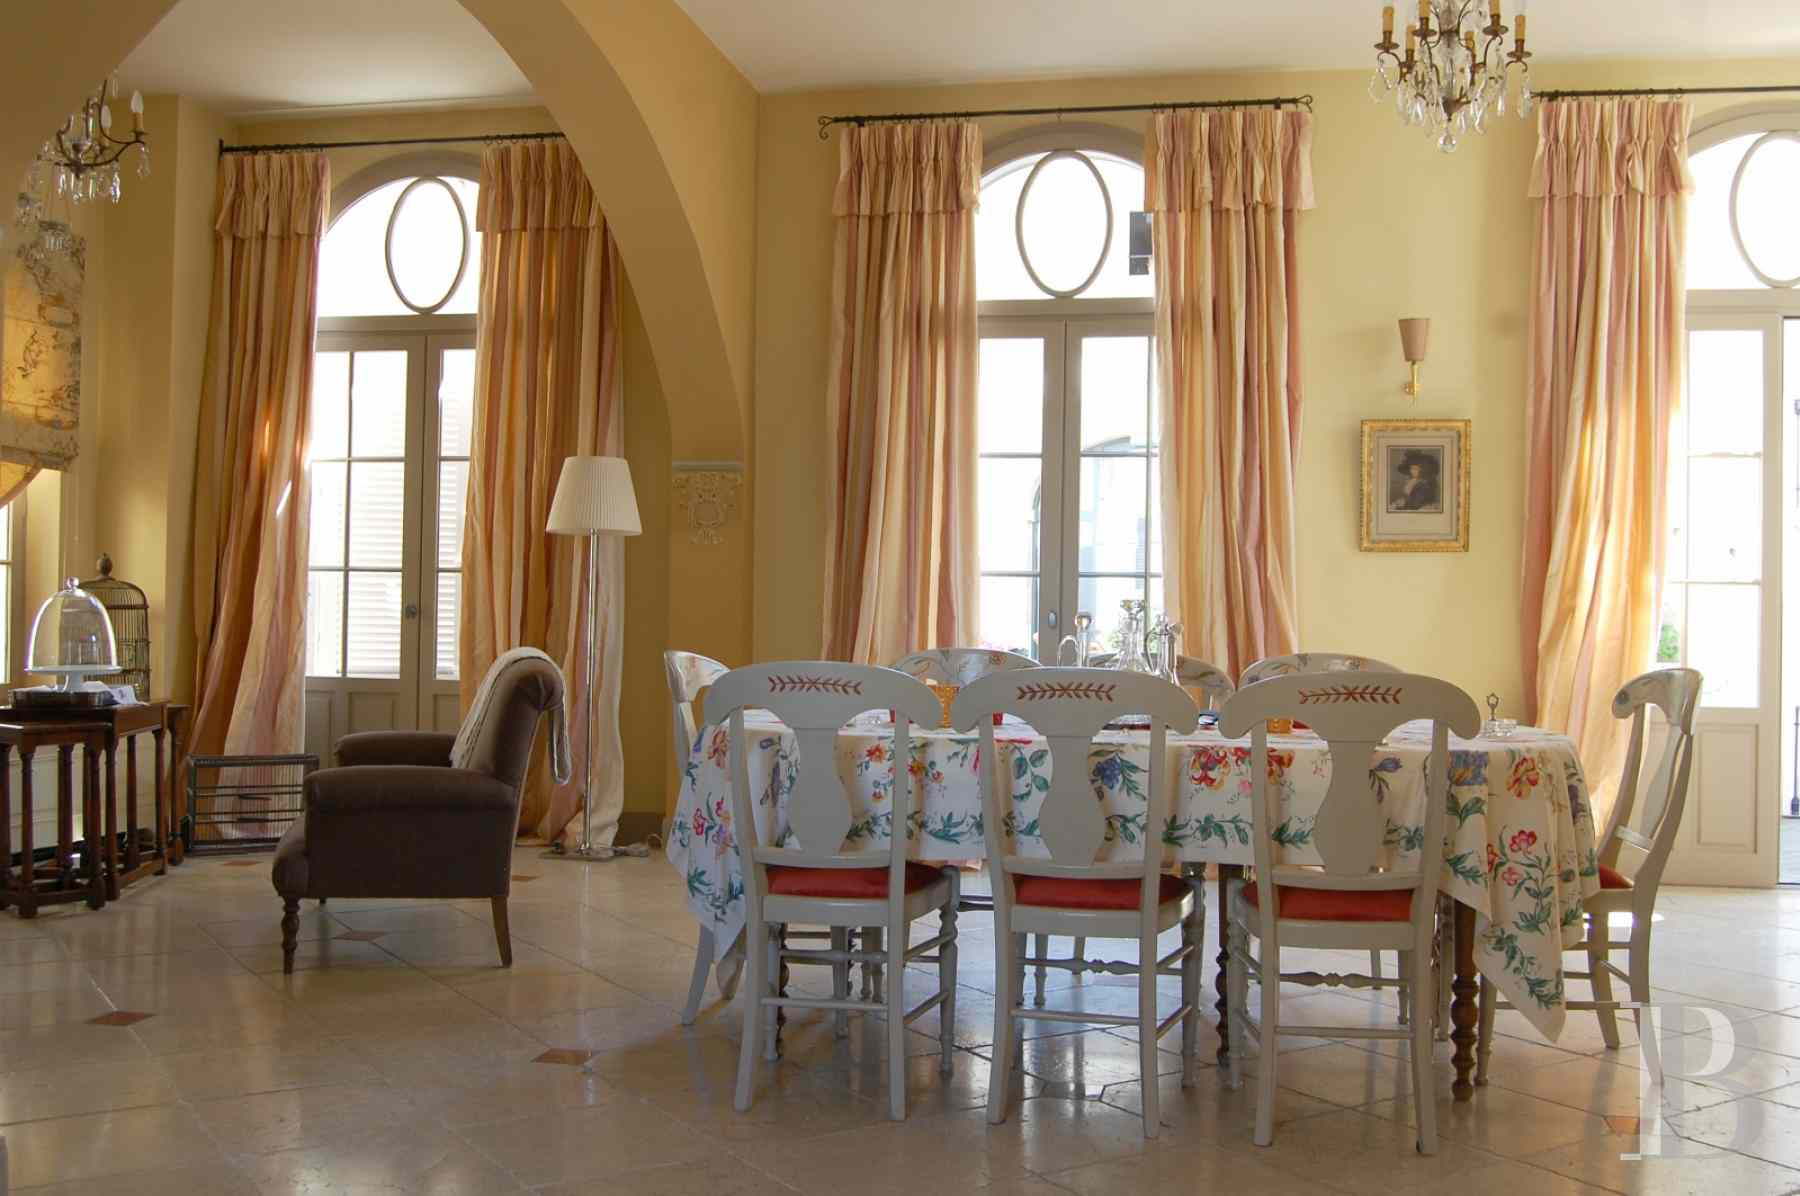 mansion houses for sale France midi pyrenees gers house - 10 zoom